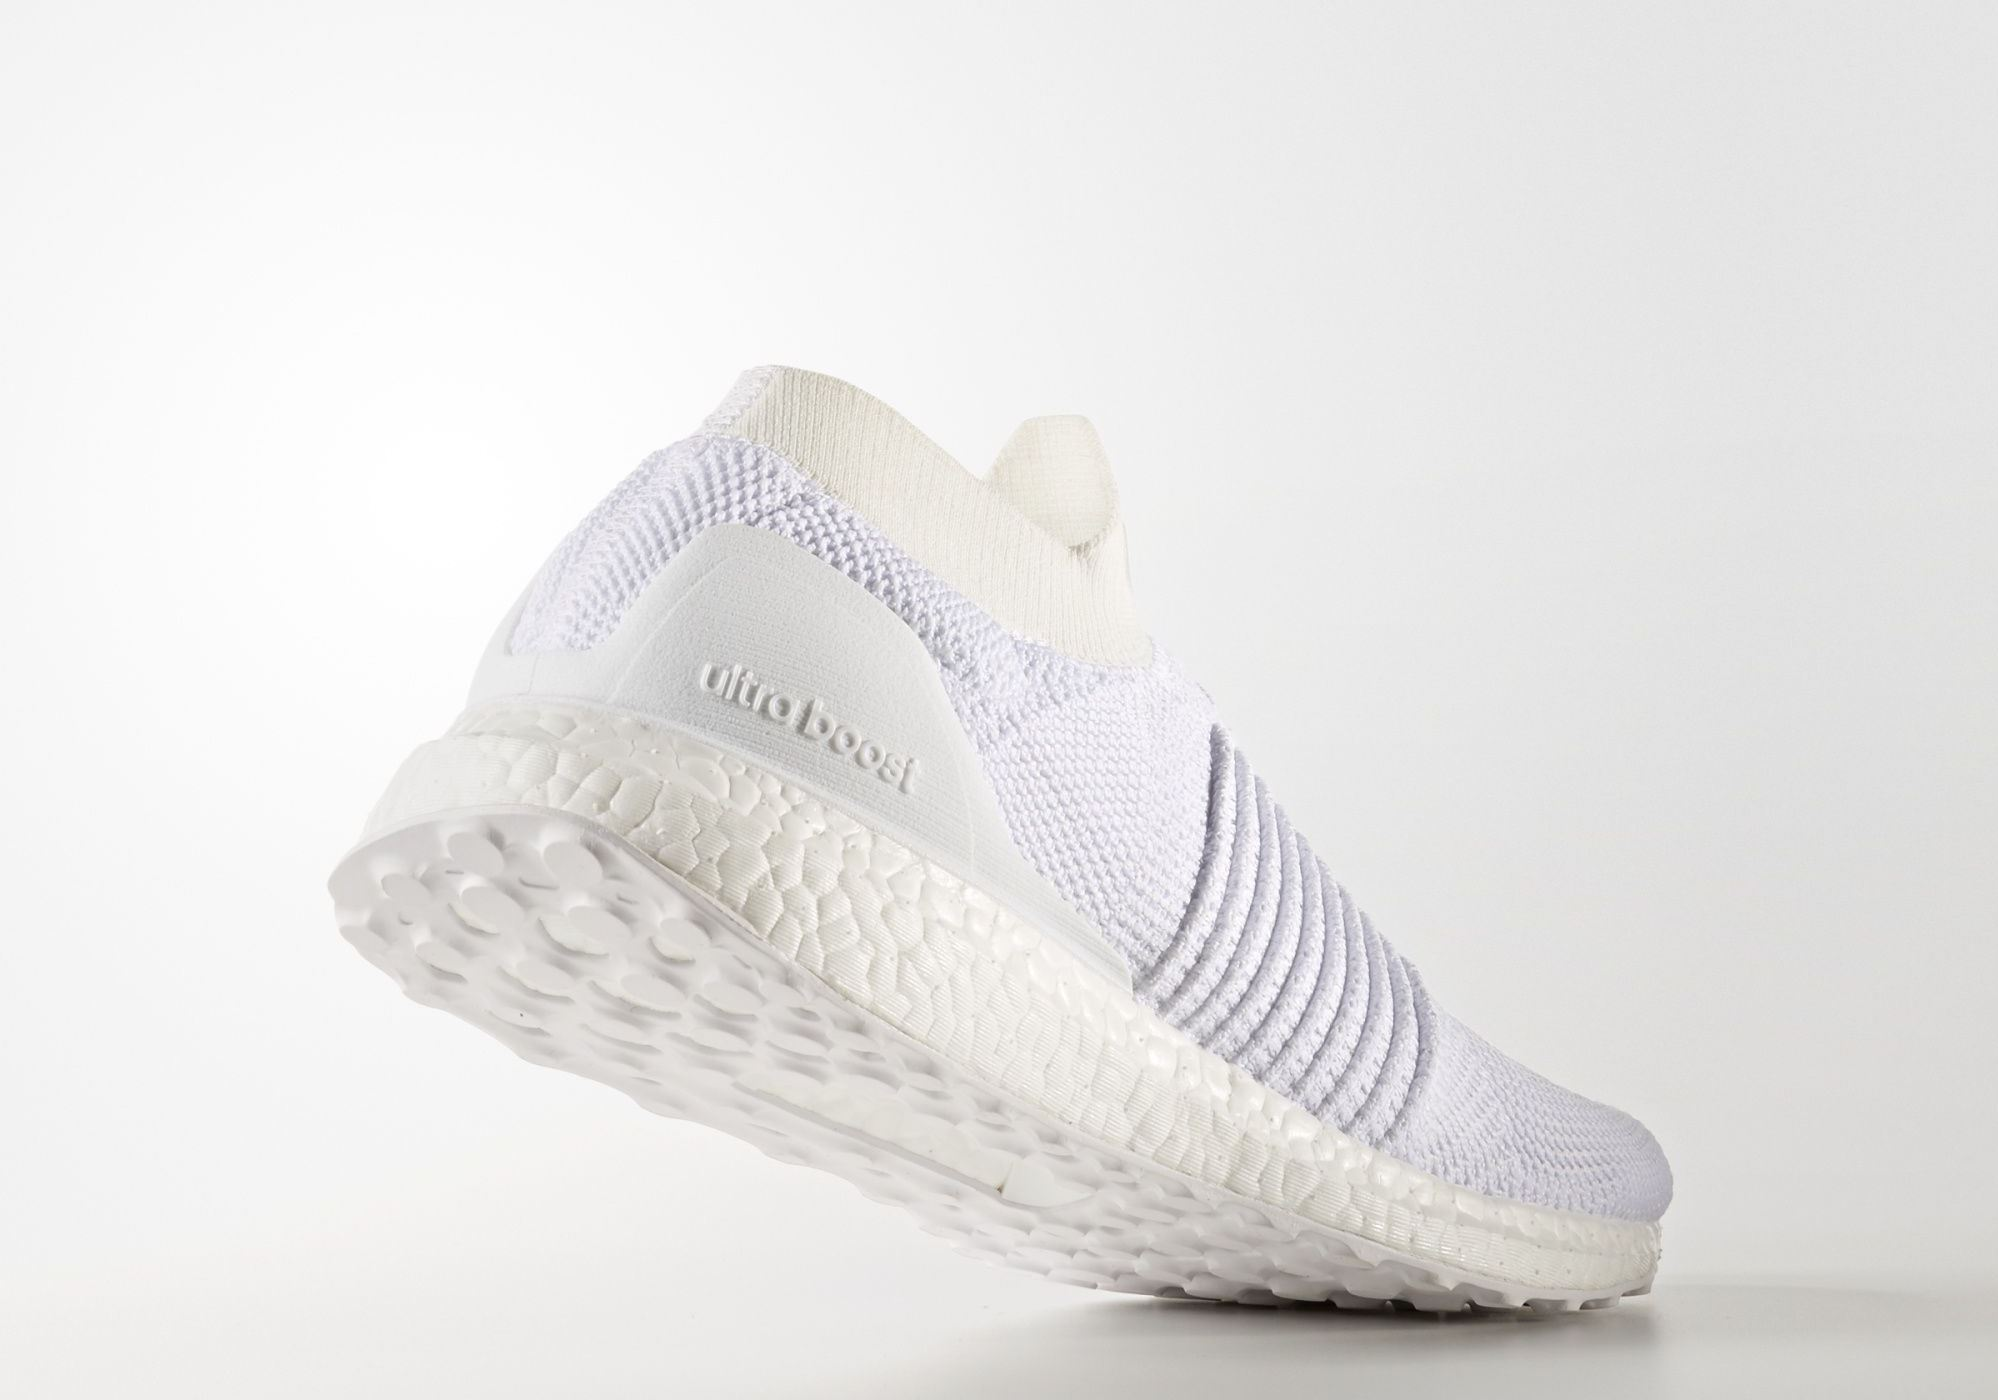 5e70f7738d00a adidas Ultra Boost Laceless Mid Triple White - Back heel - WearTesters